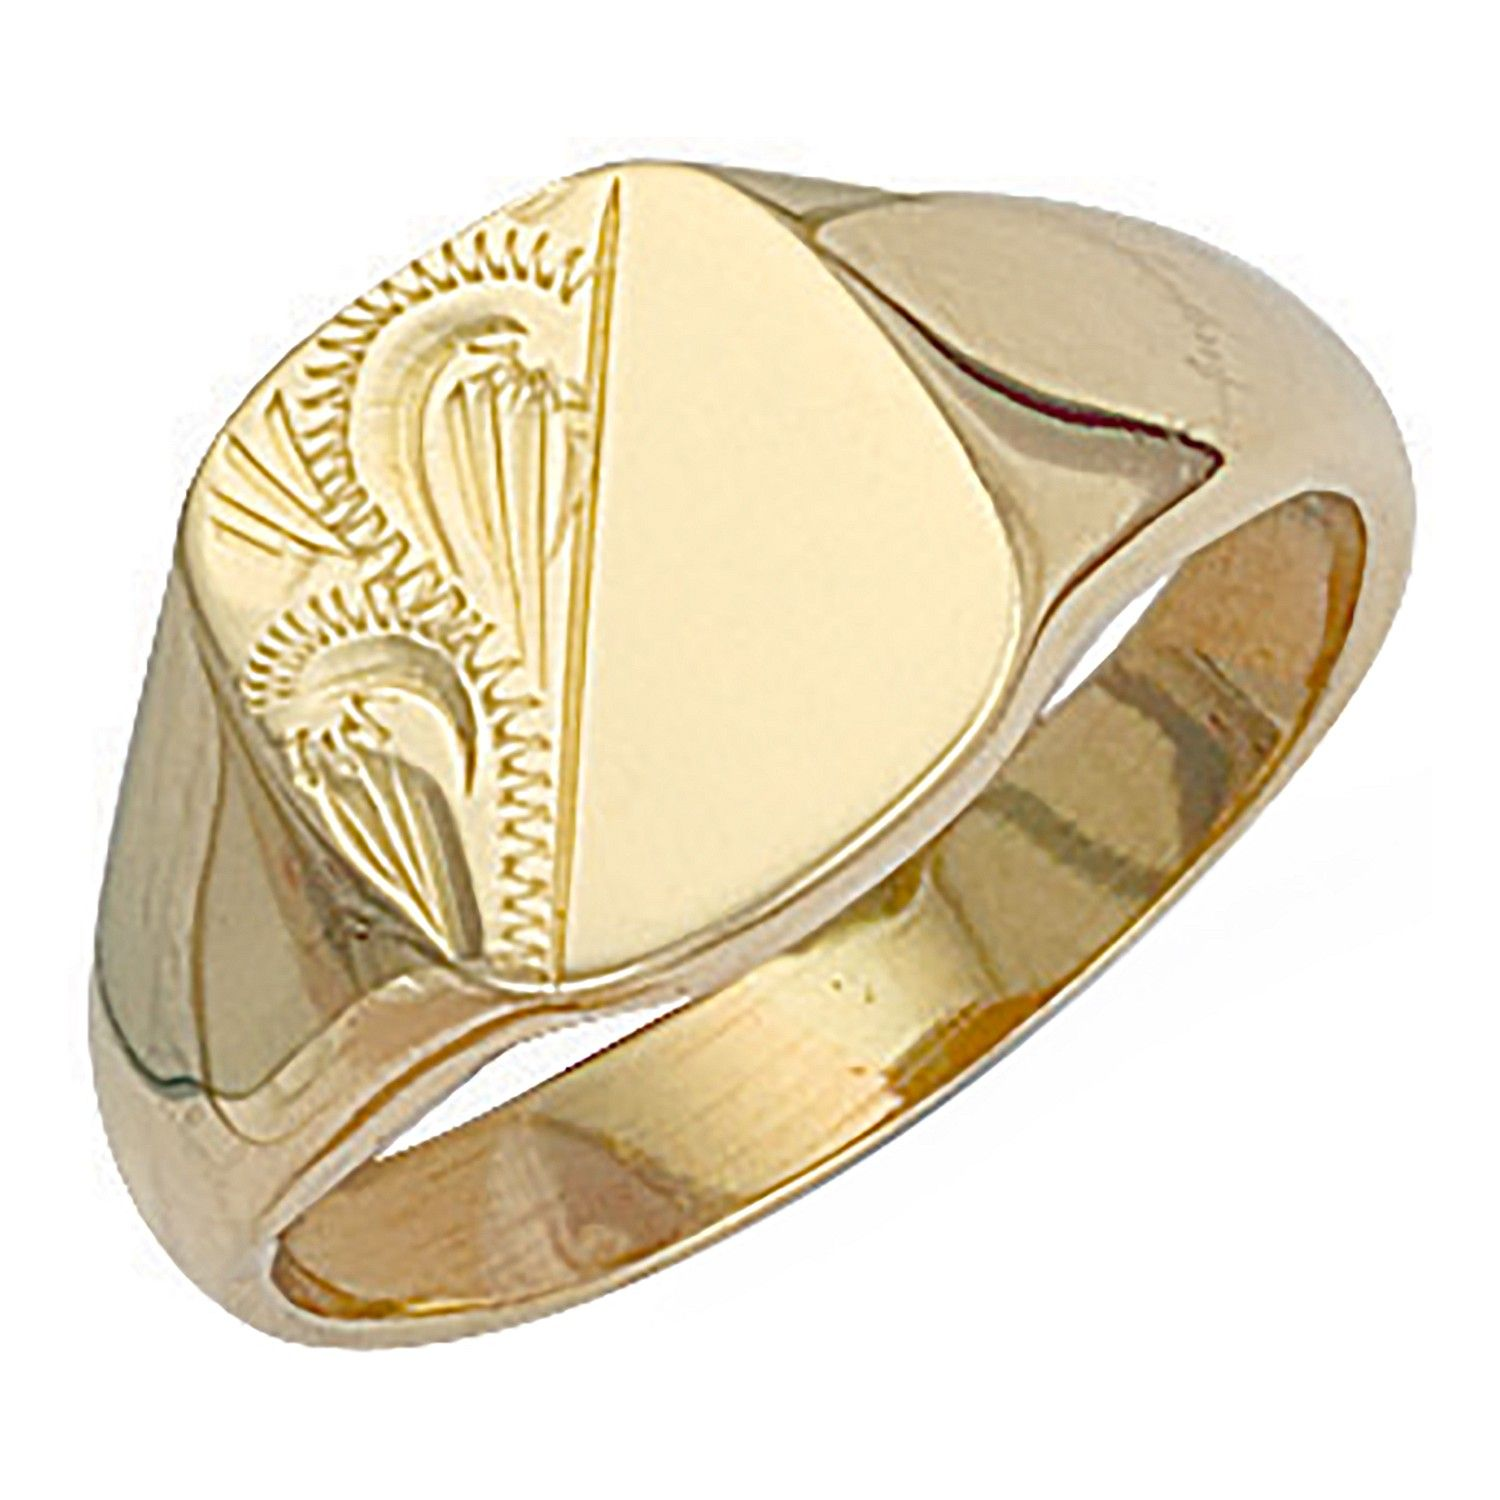 9ct Yellow Gold Cushion Engraved Signet Ring 13 x 13.5mm